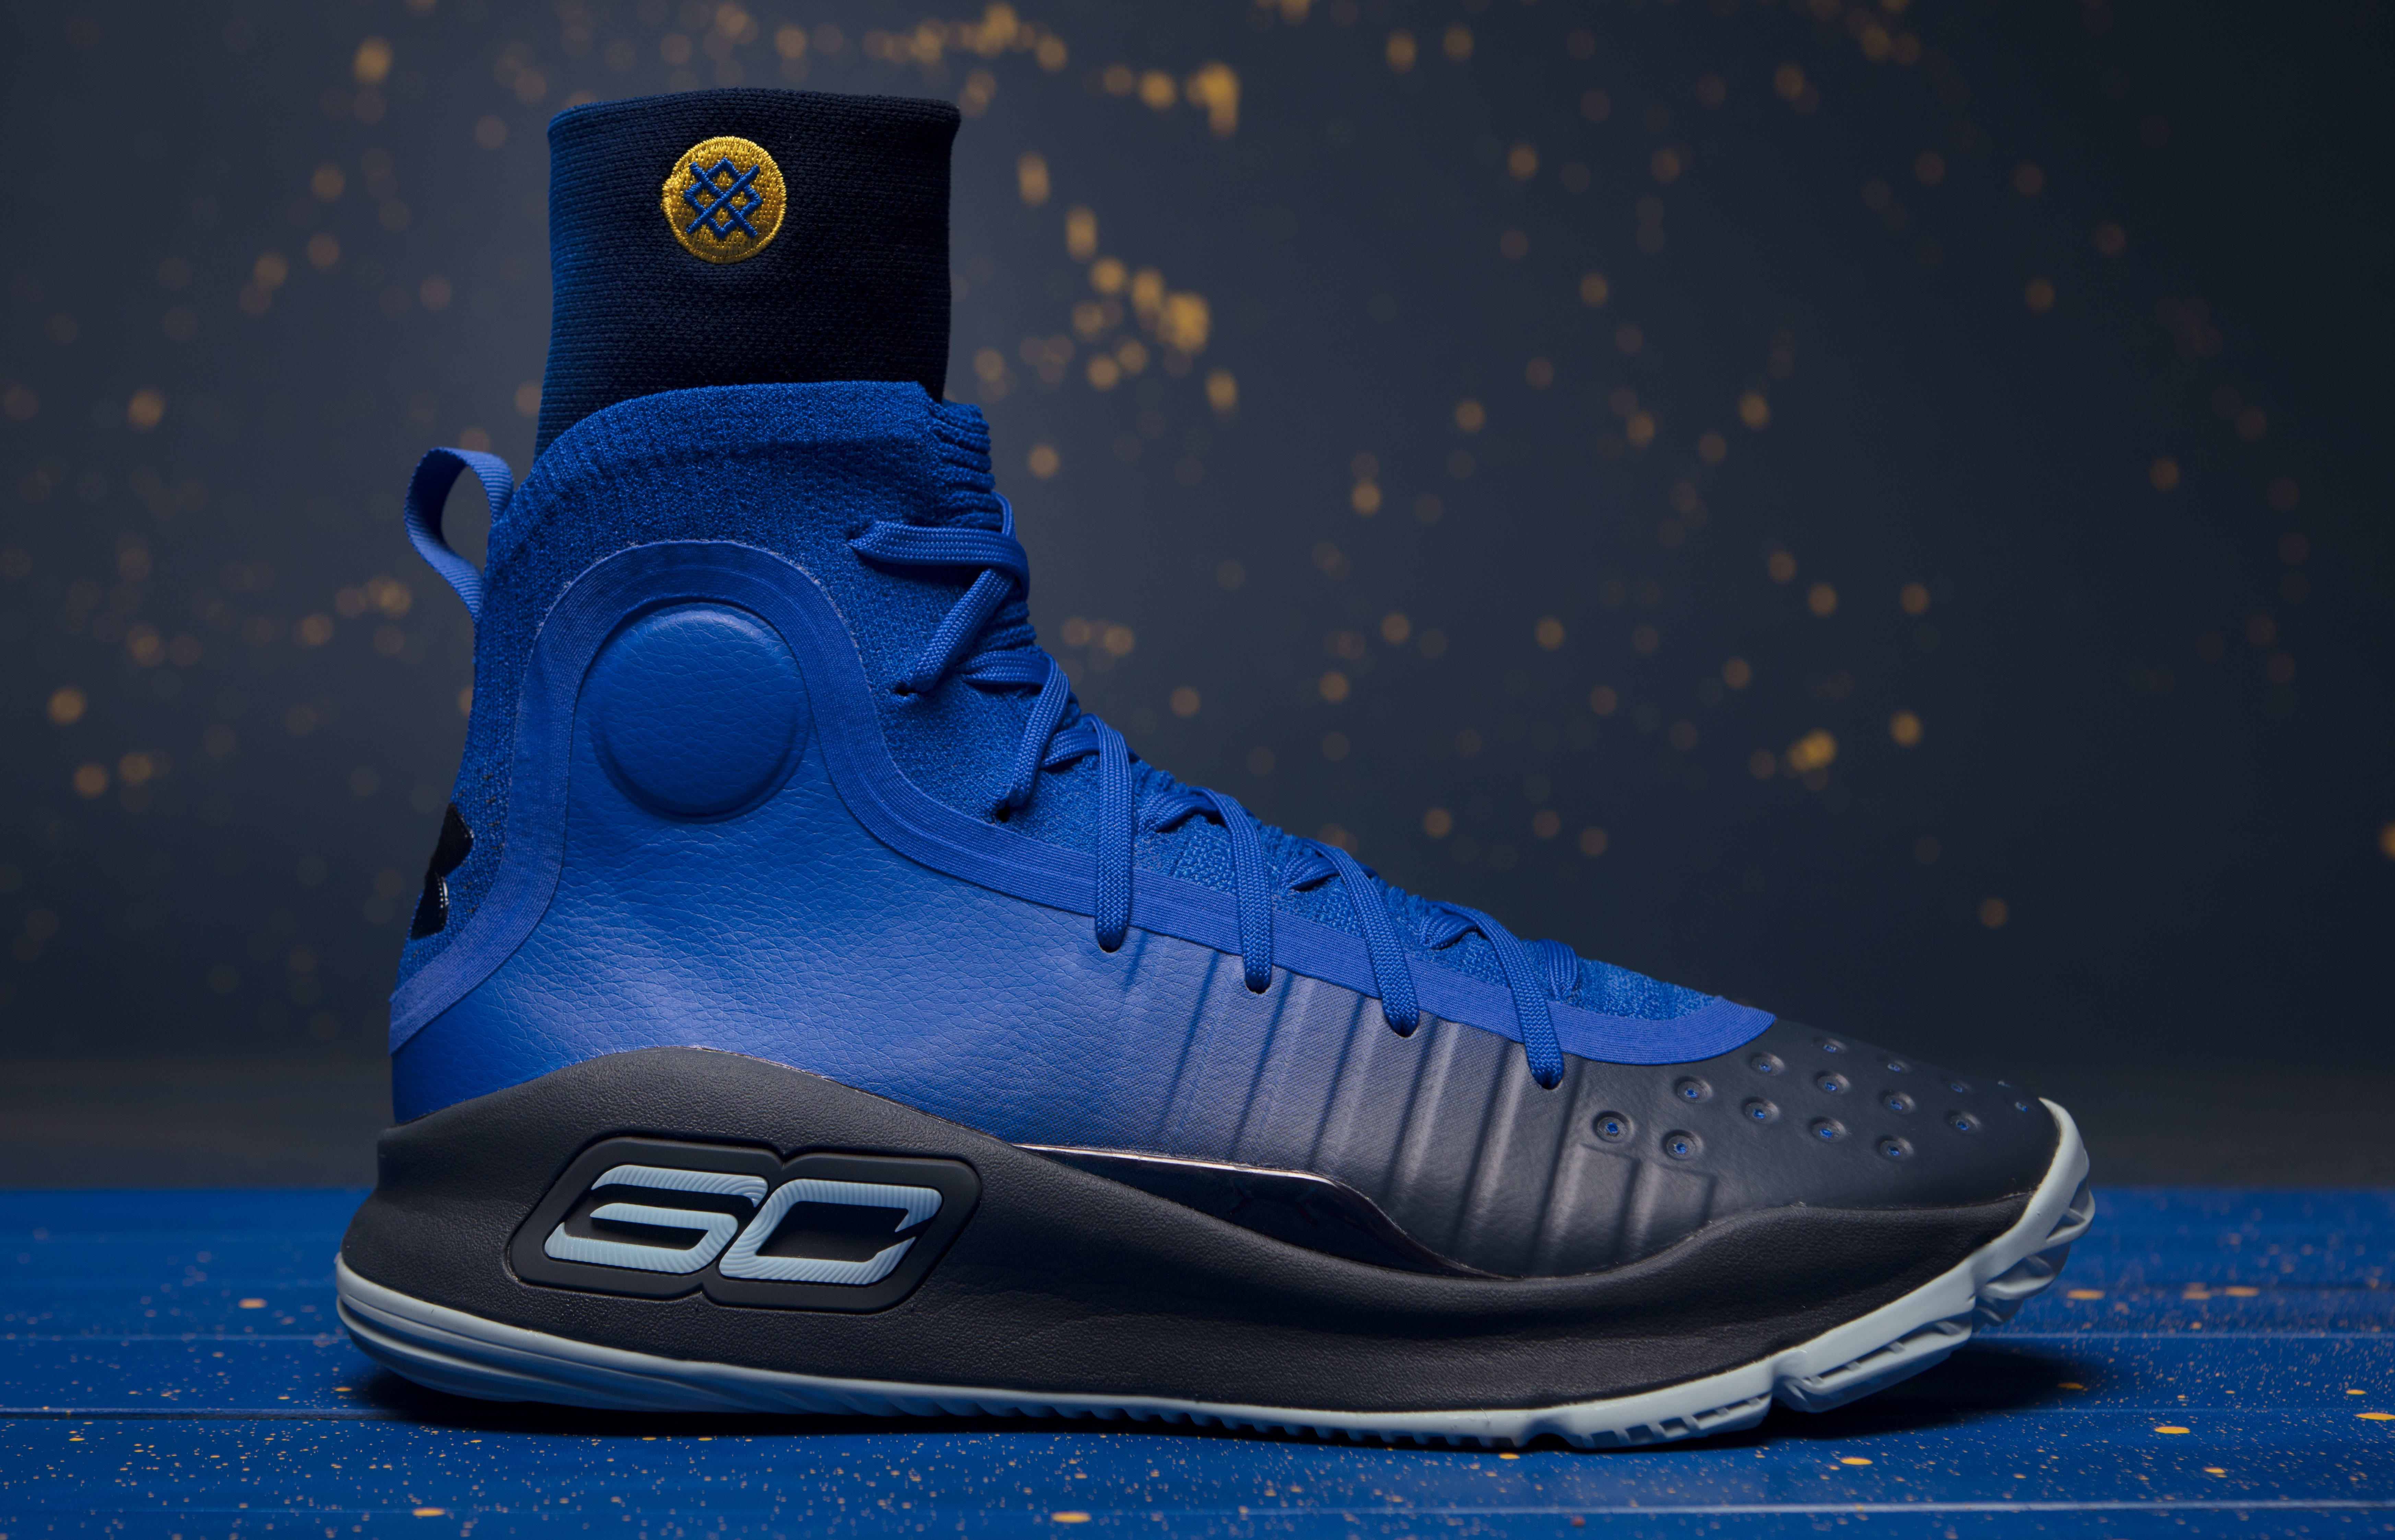 c19b1769a454 Image via Under Armour Under Armour Curry 4 More Fun 1298306-401 x Stance  1326667 ...